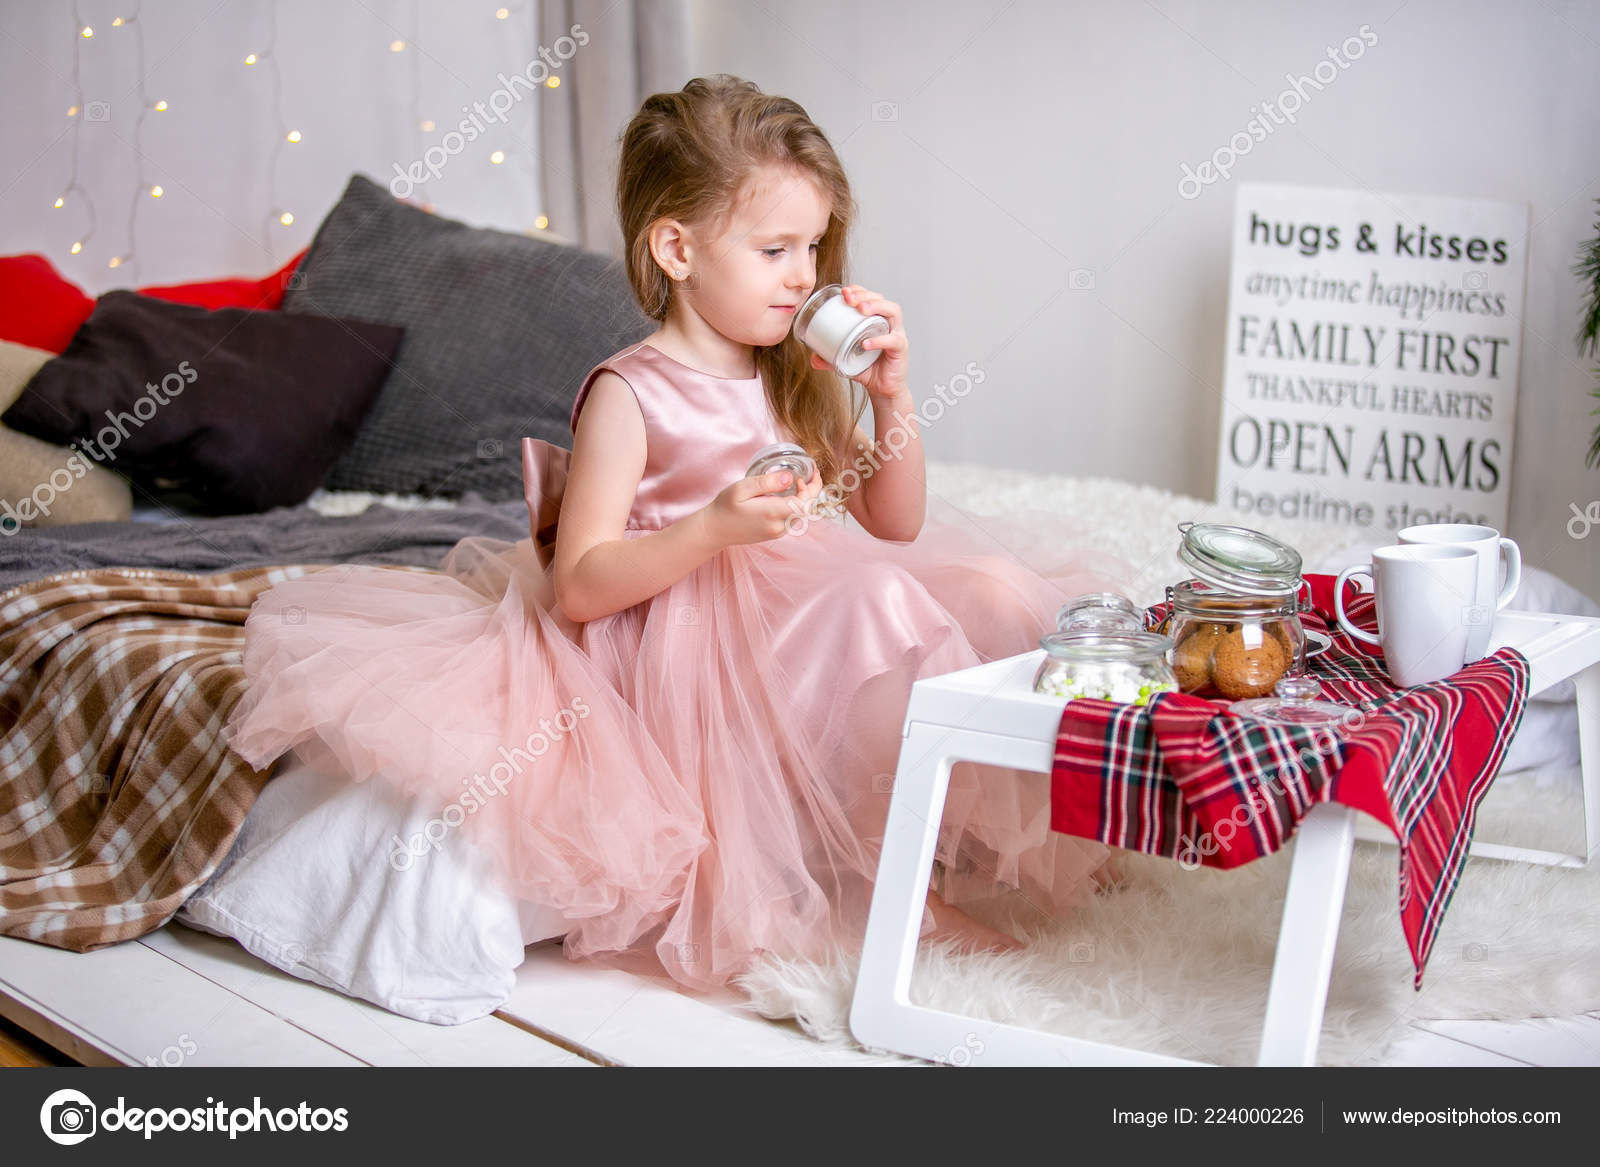 Pretty Little Girl Years Old Pink Dress Child Christmas Room Stock Photo Image By C Goodcat88 224000226